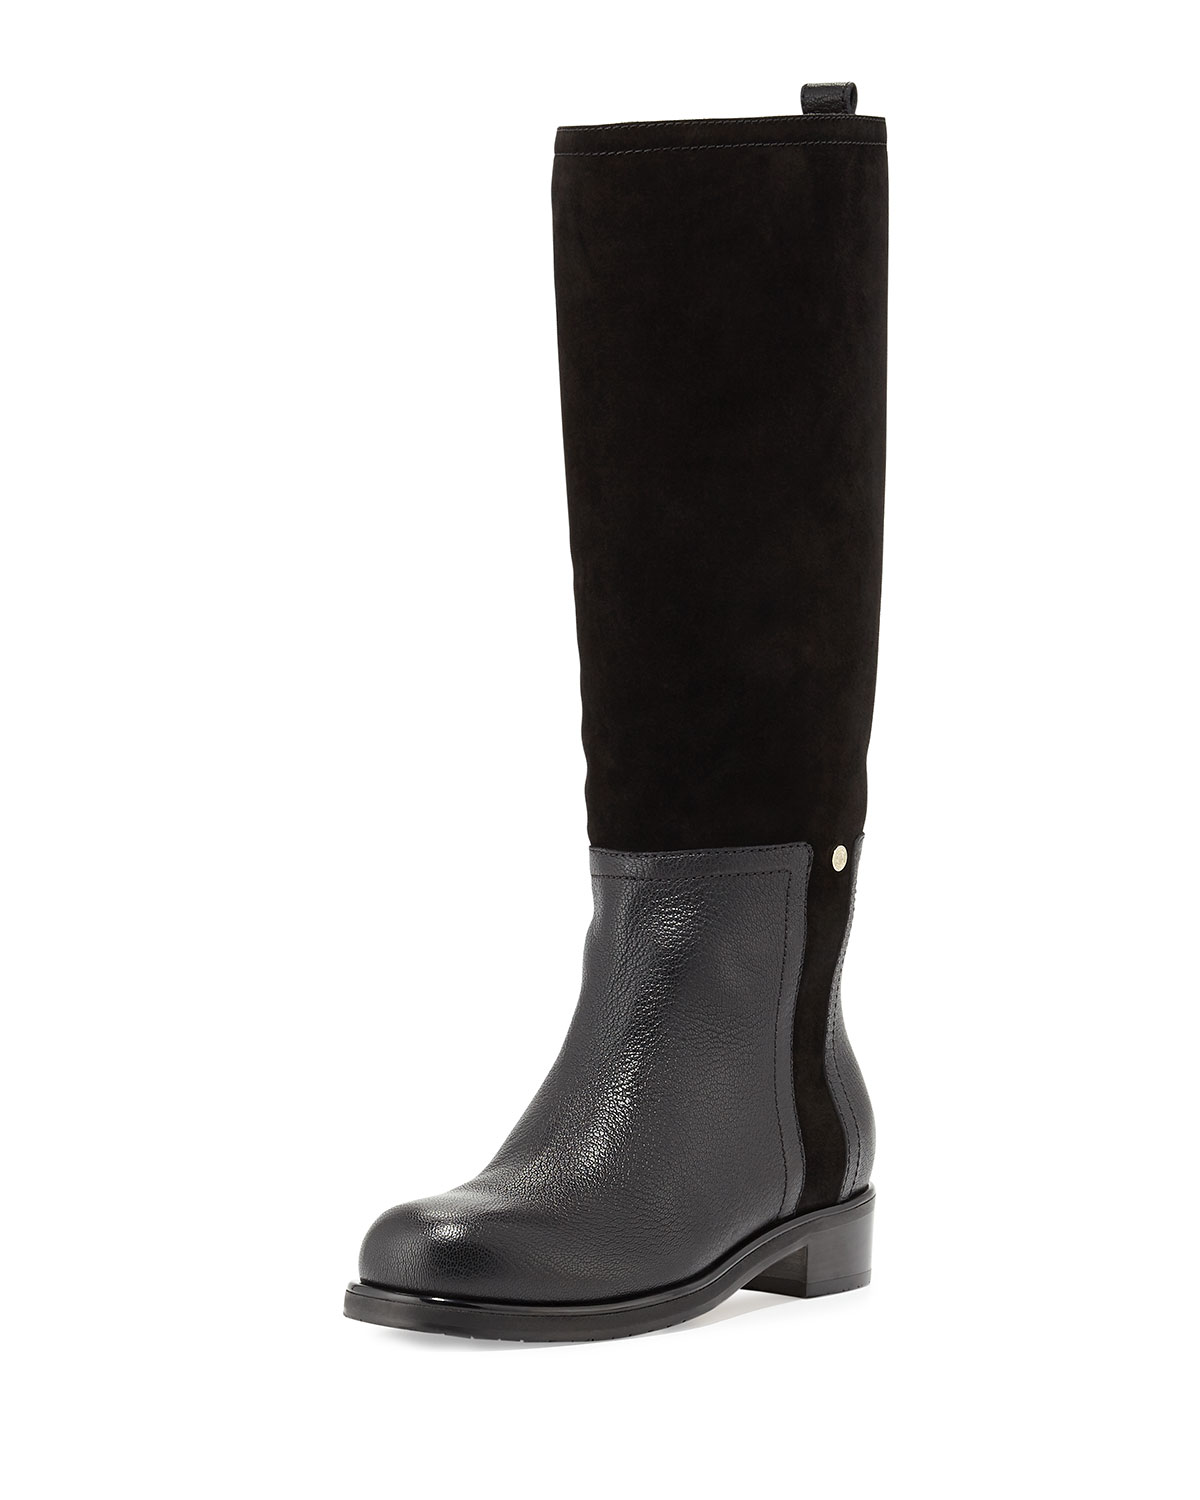 Debut Flat Leather Riding Boot, Black